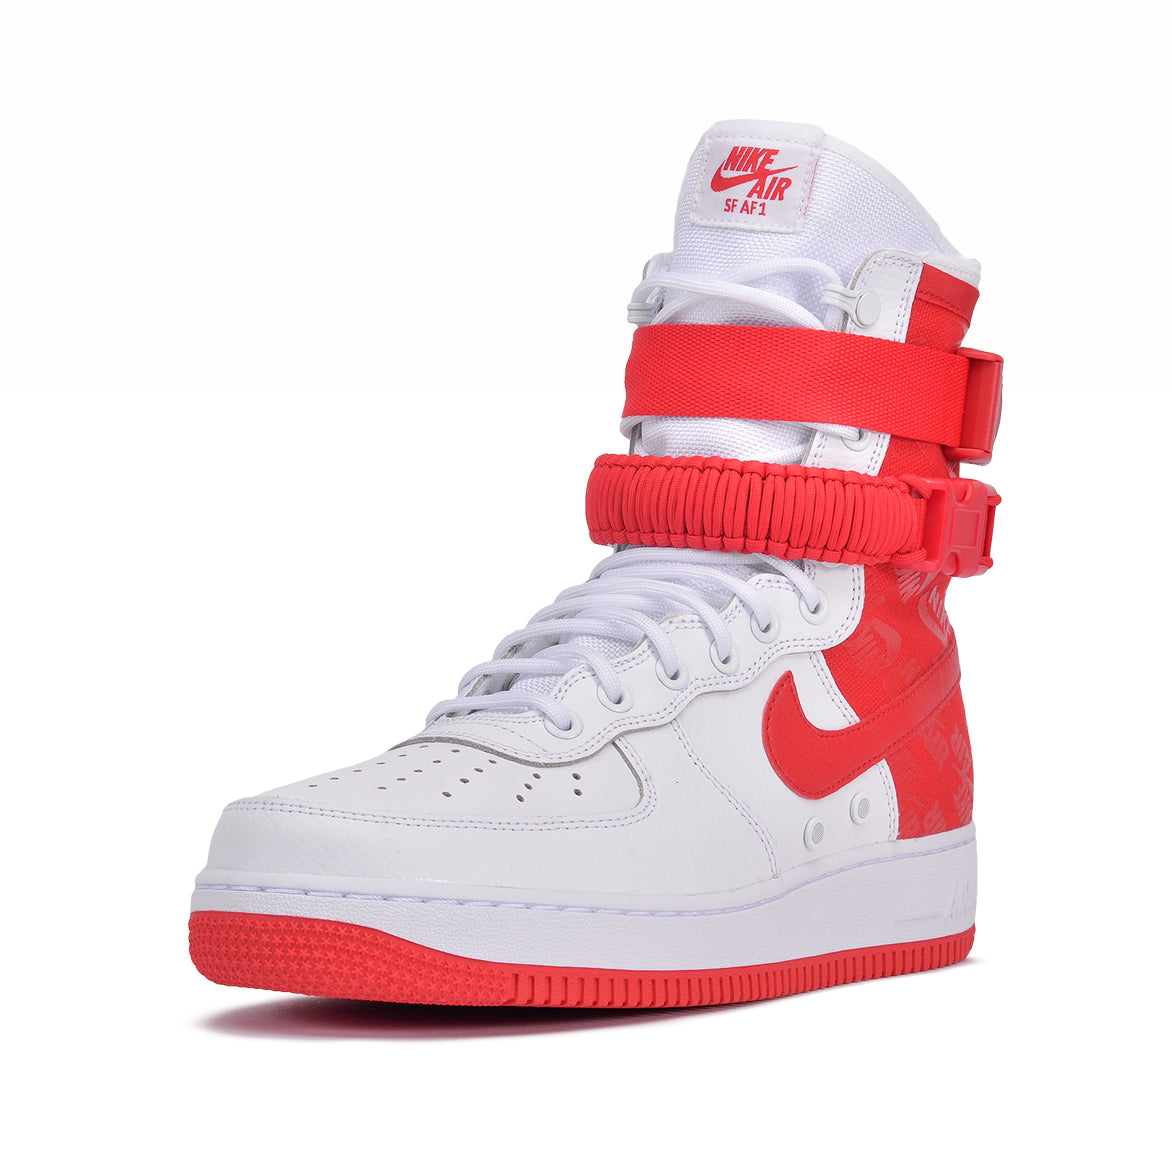 SF AF1 - WHITE / UNIVERSITY RED